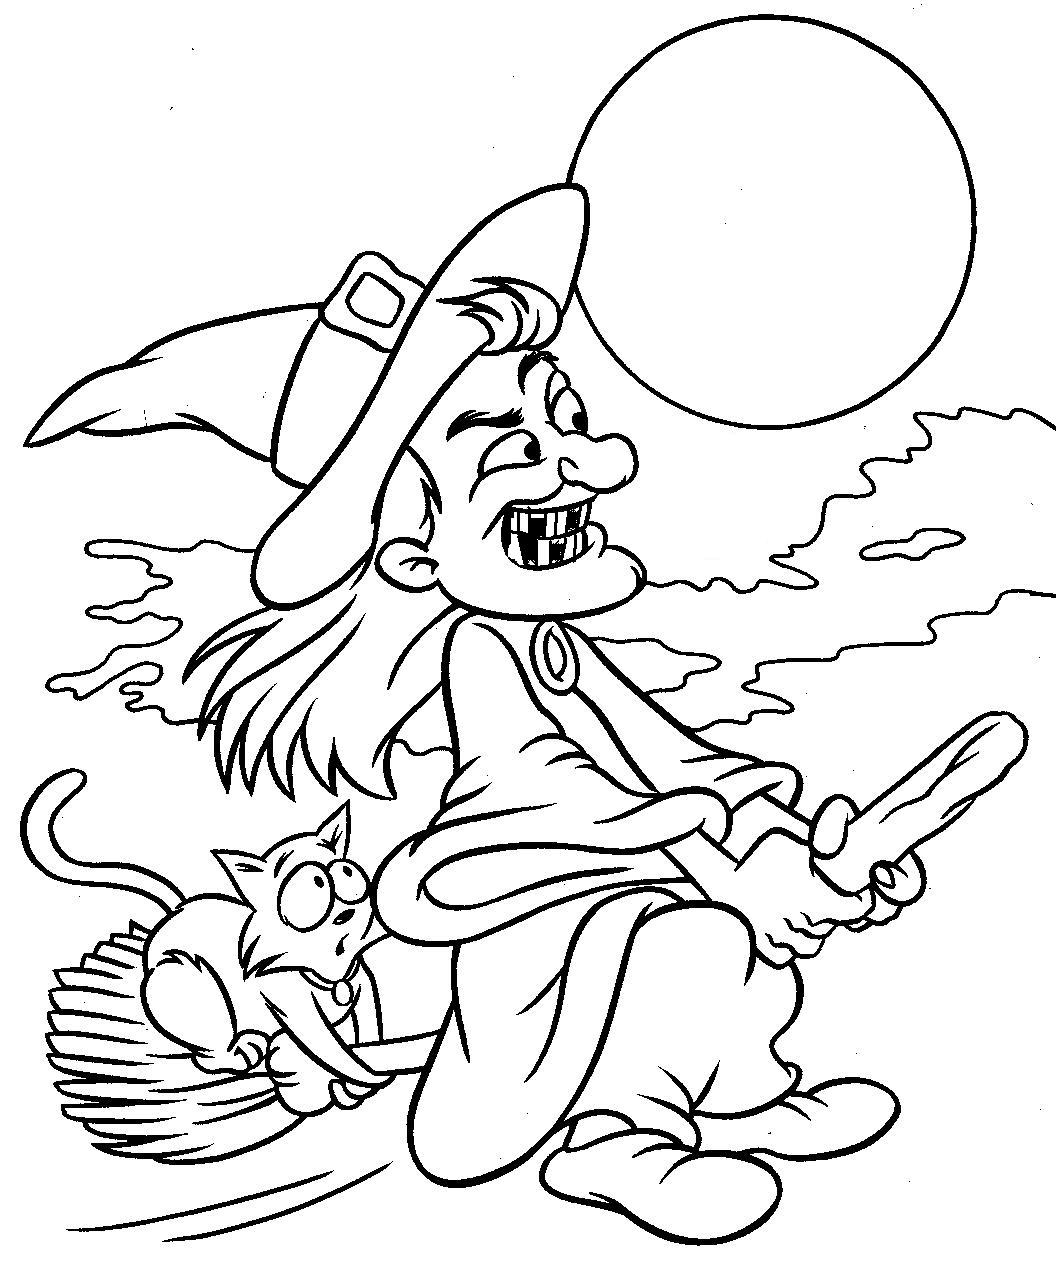 coloring halloween activities halloween coloring pages for older kids gift of curiosity coloring activities halloween